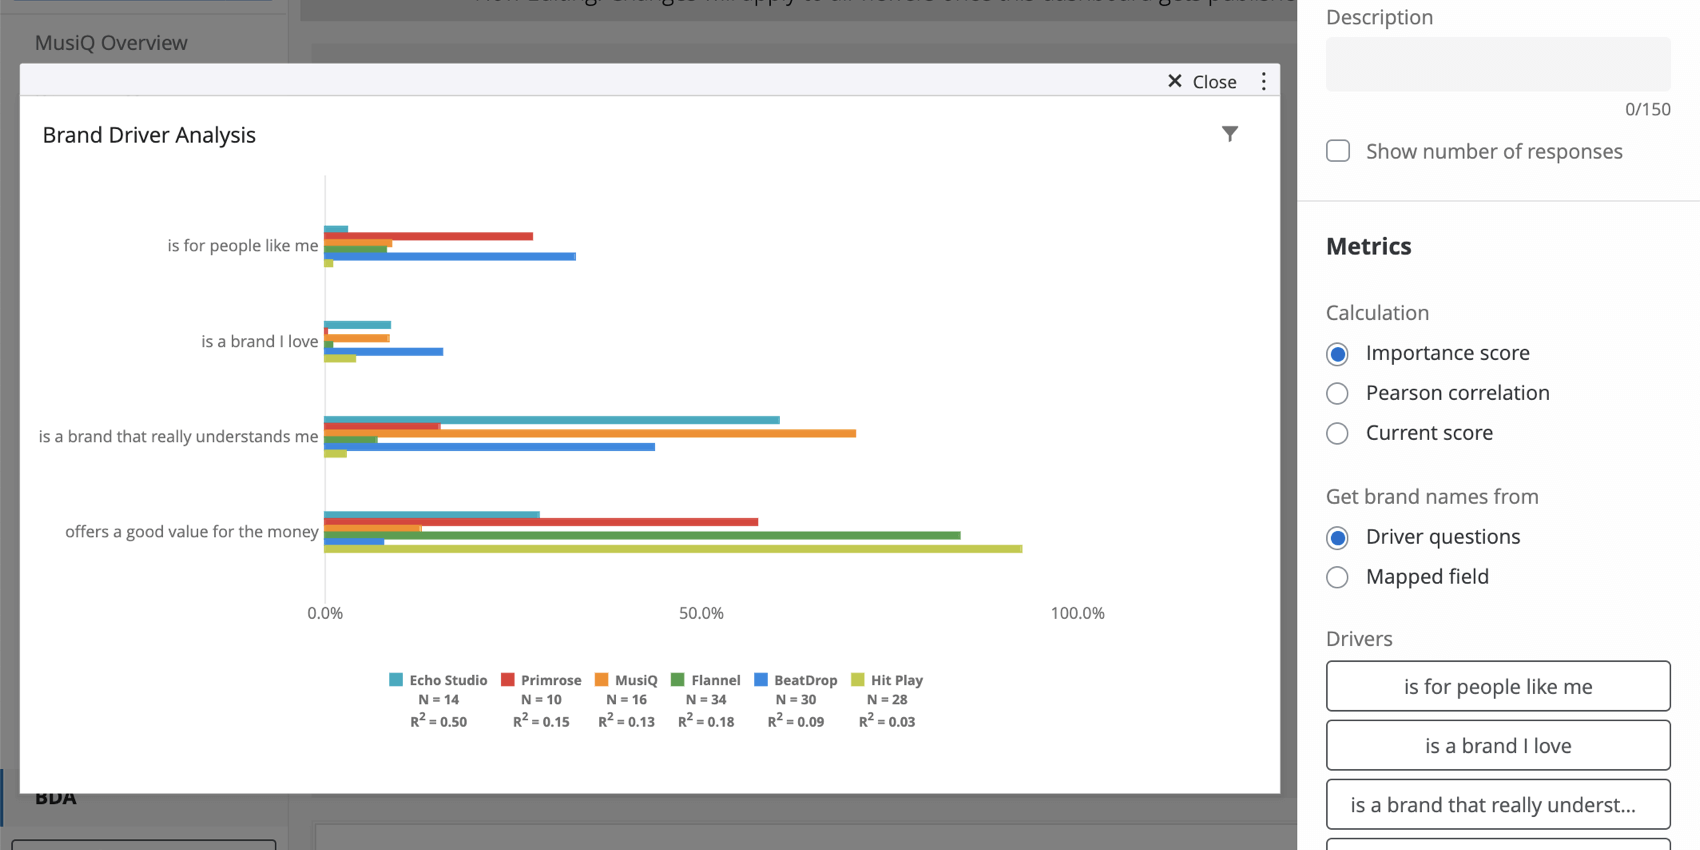 Chart set to importance score. This chart looks like a bar chart with brand imagery broken out along the left and different colored bars representing different brands